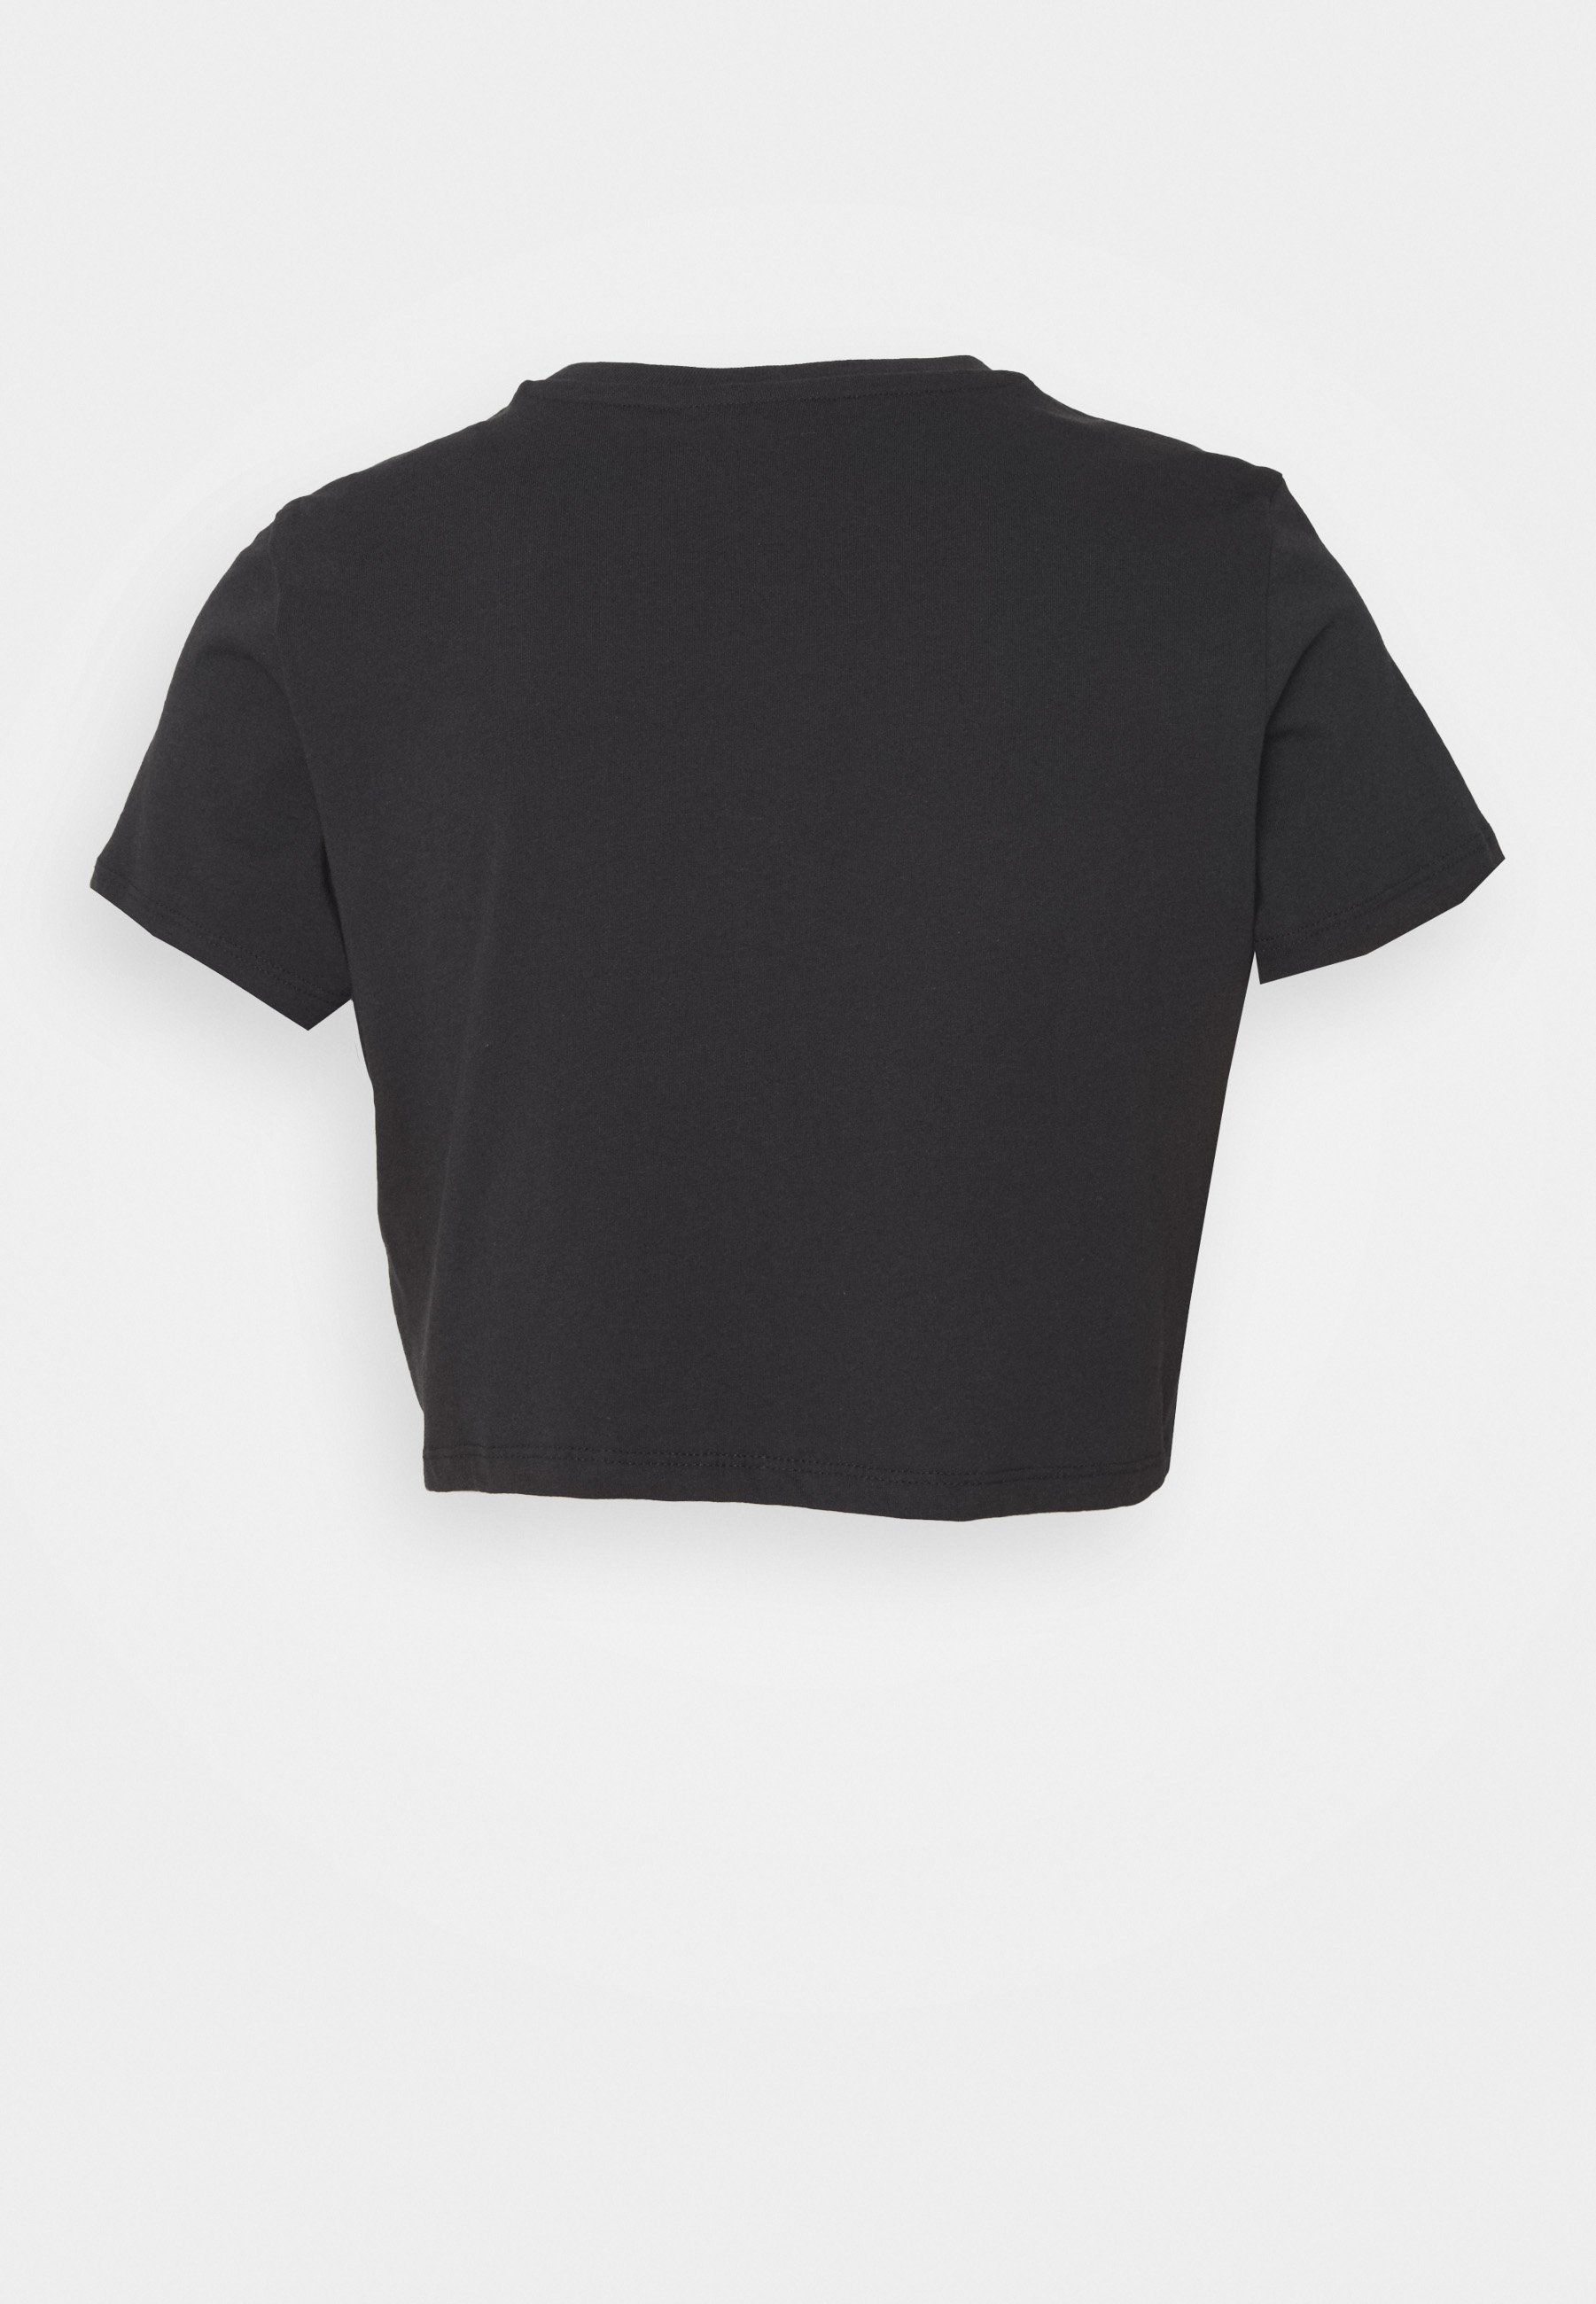 Topshop SPACE BABE CROP TEE - T-shirt con stampa - black BMs2hEfs